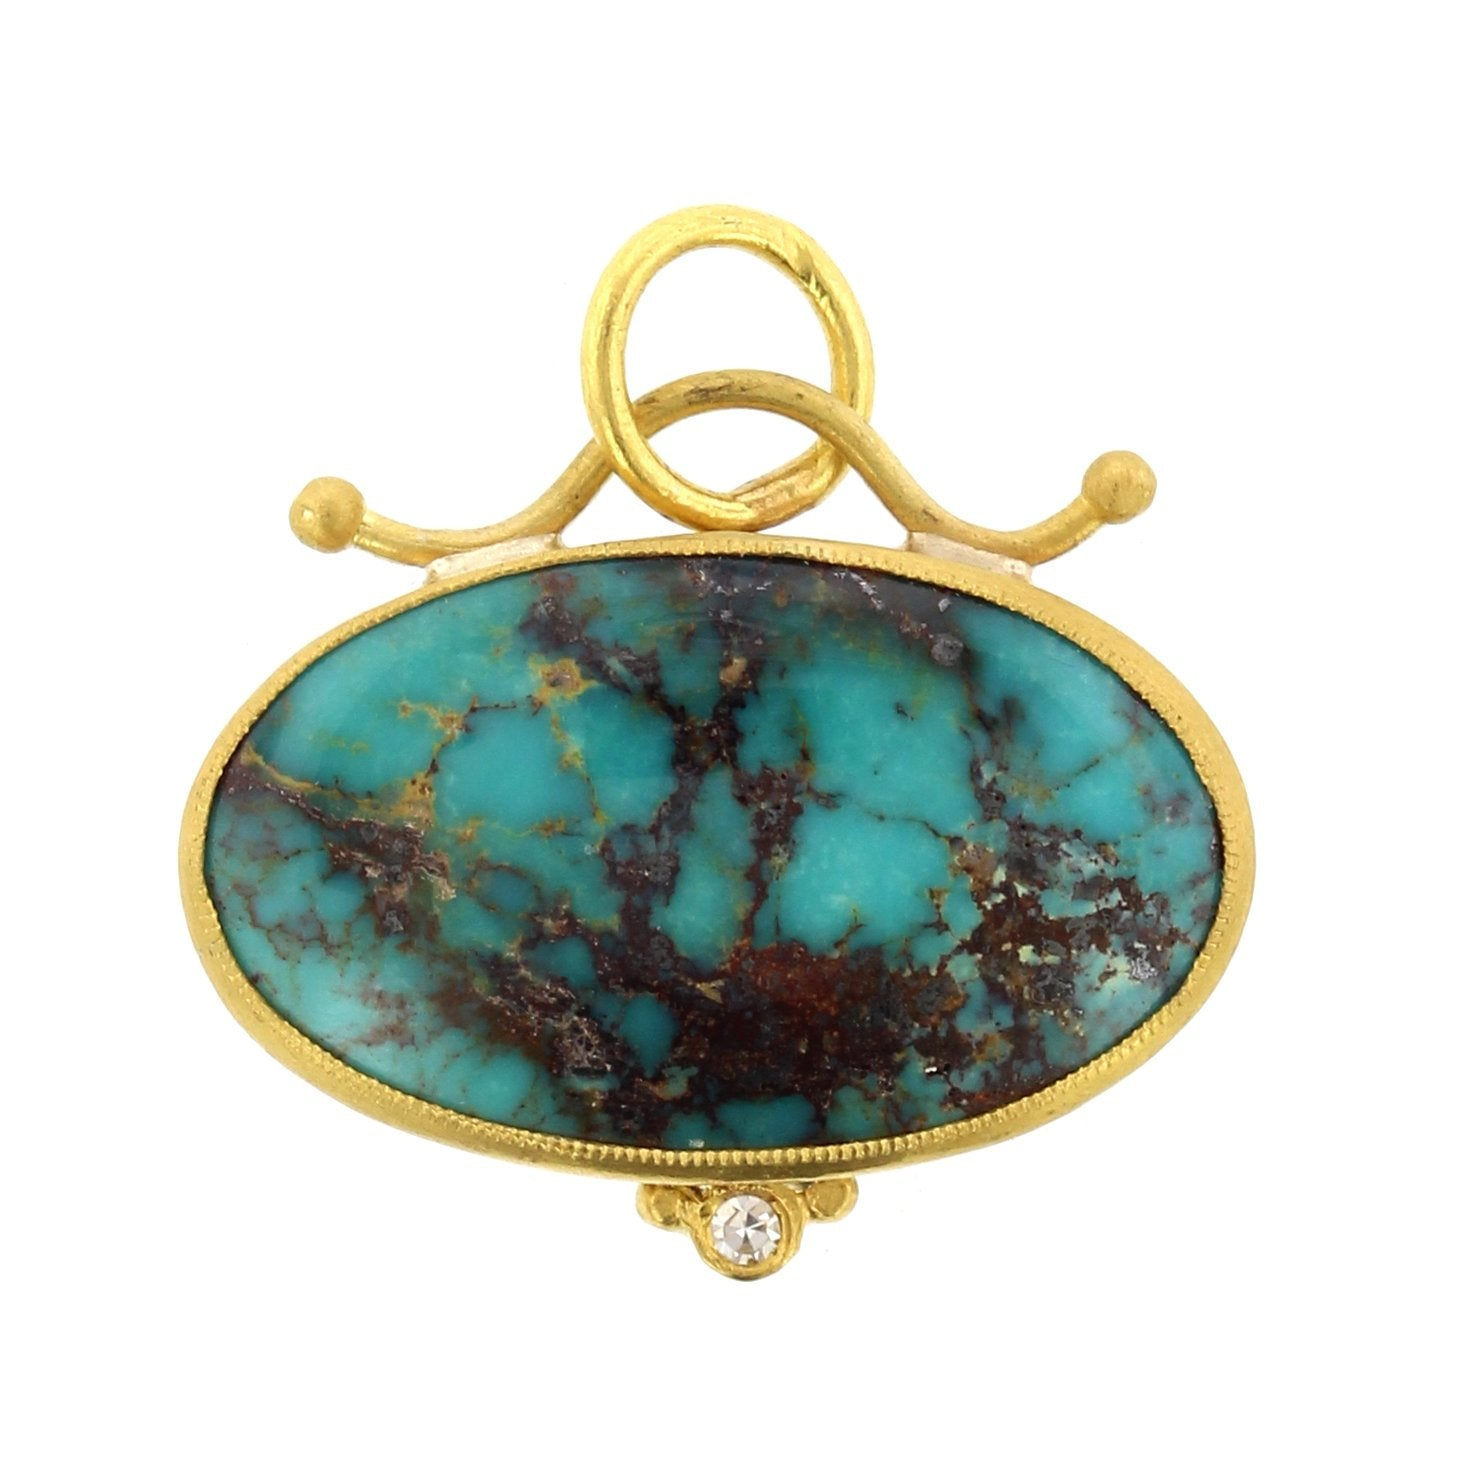 24K Yellow Gold and Sterling Silver Turquoise Charm